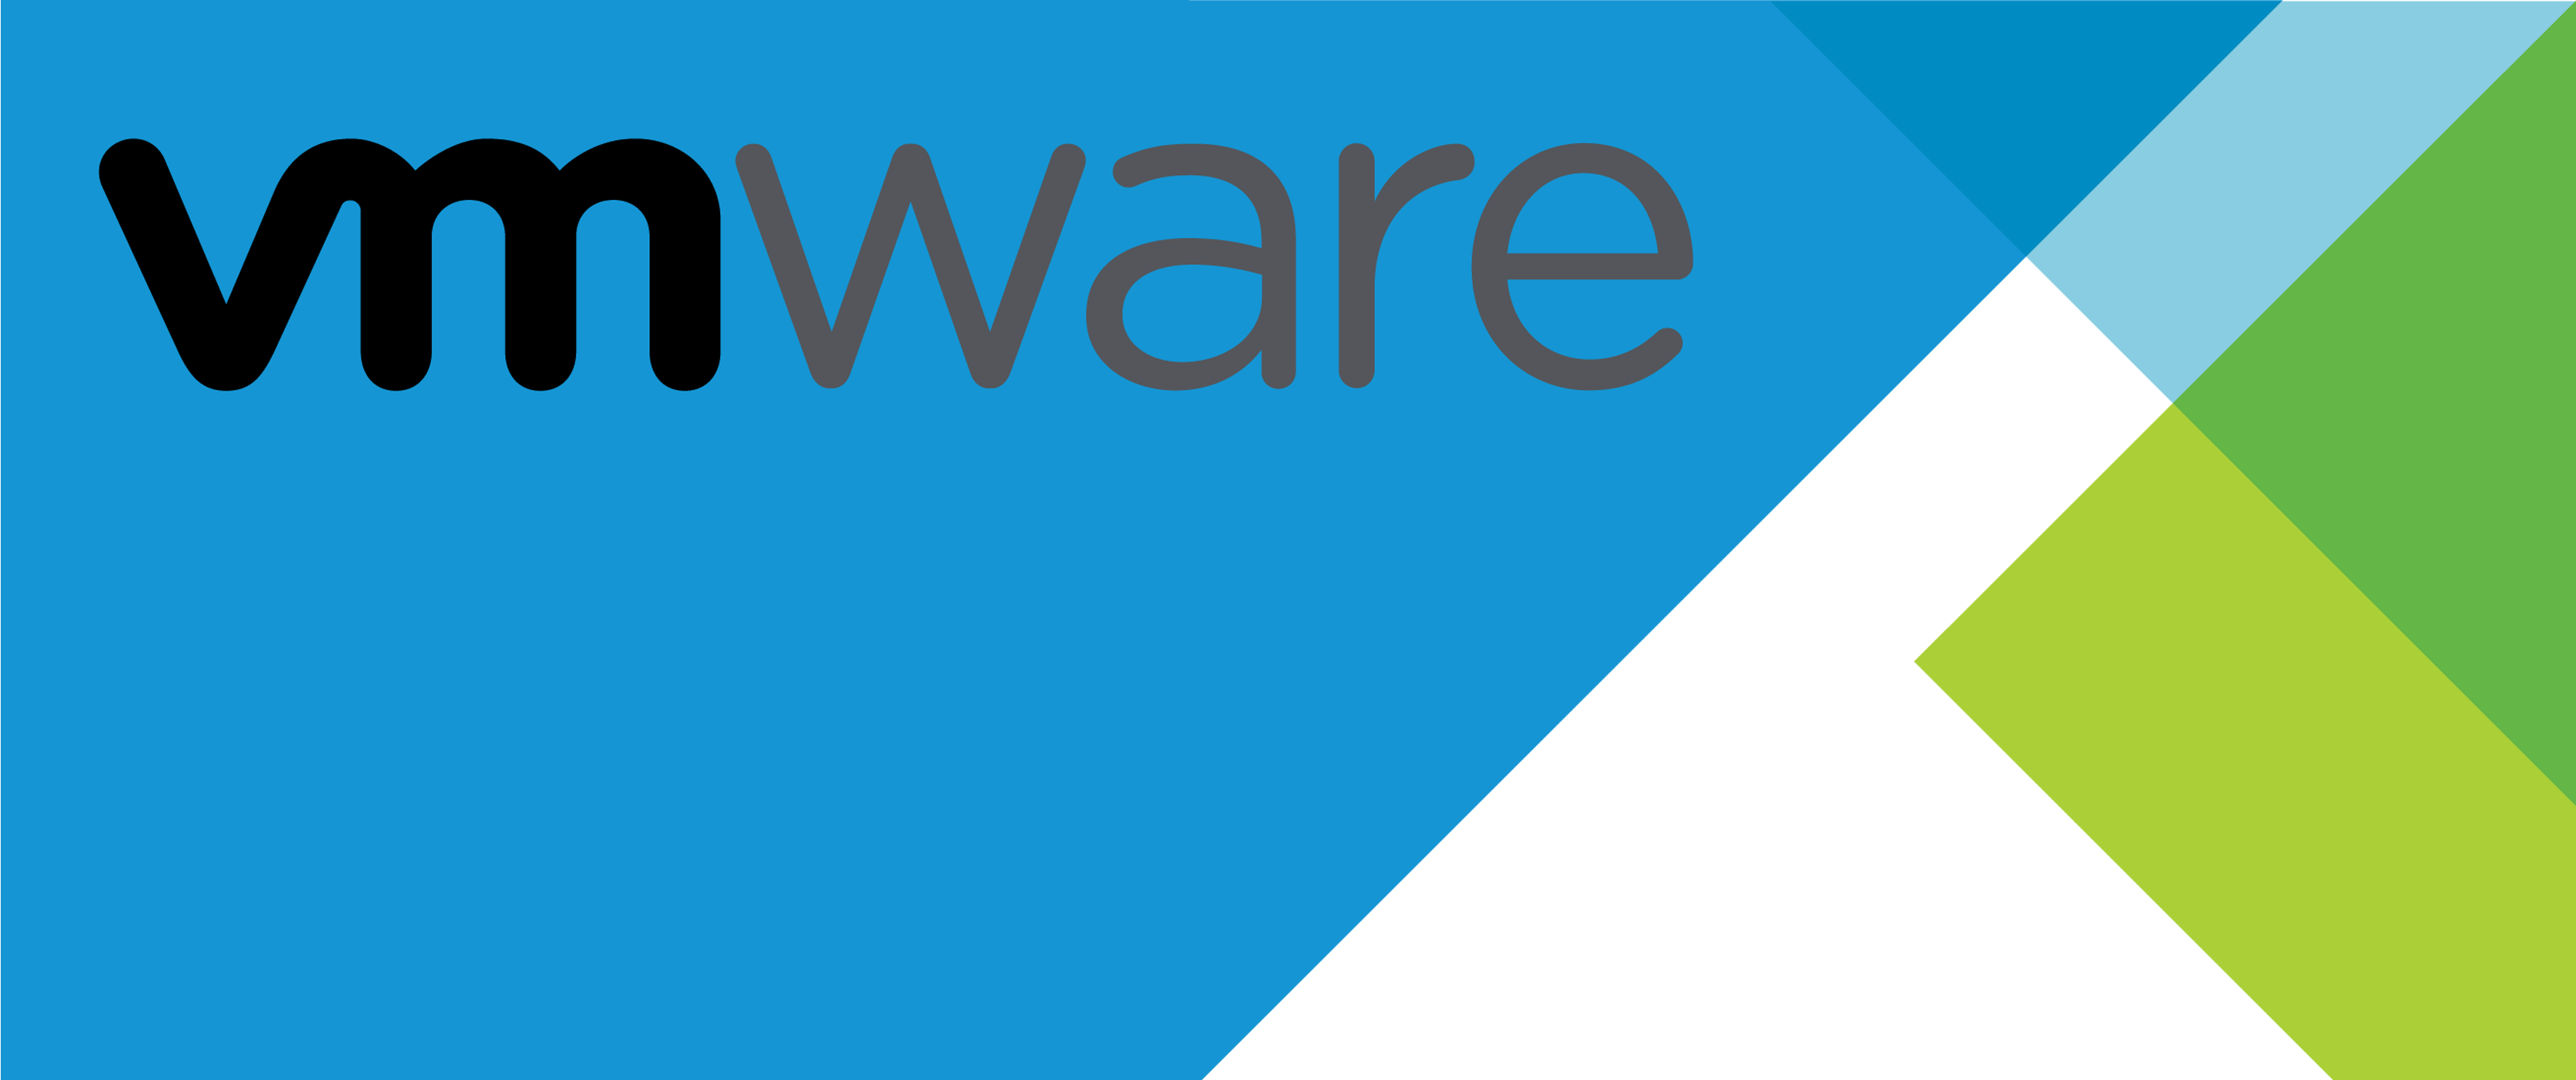 Powercli Tutorial A Guide For Newbies Managing Vmware